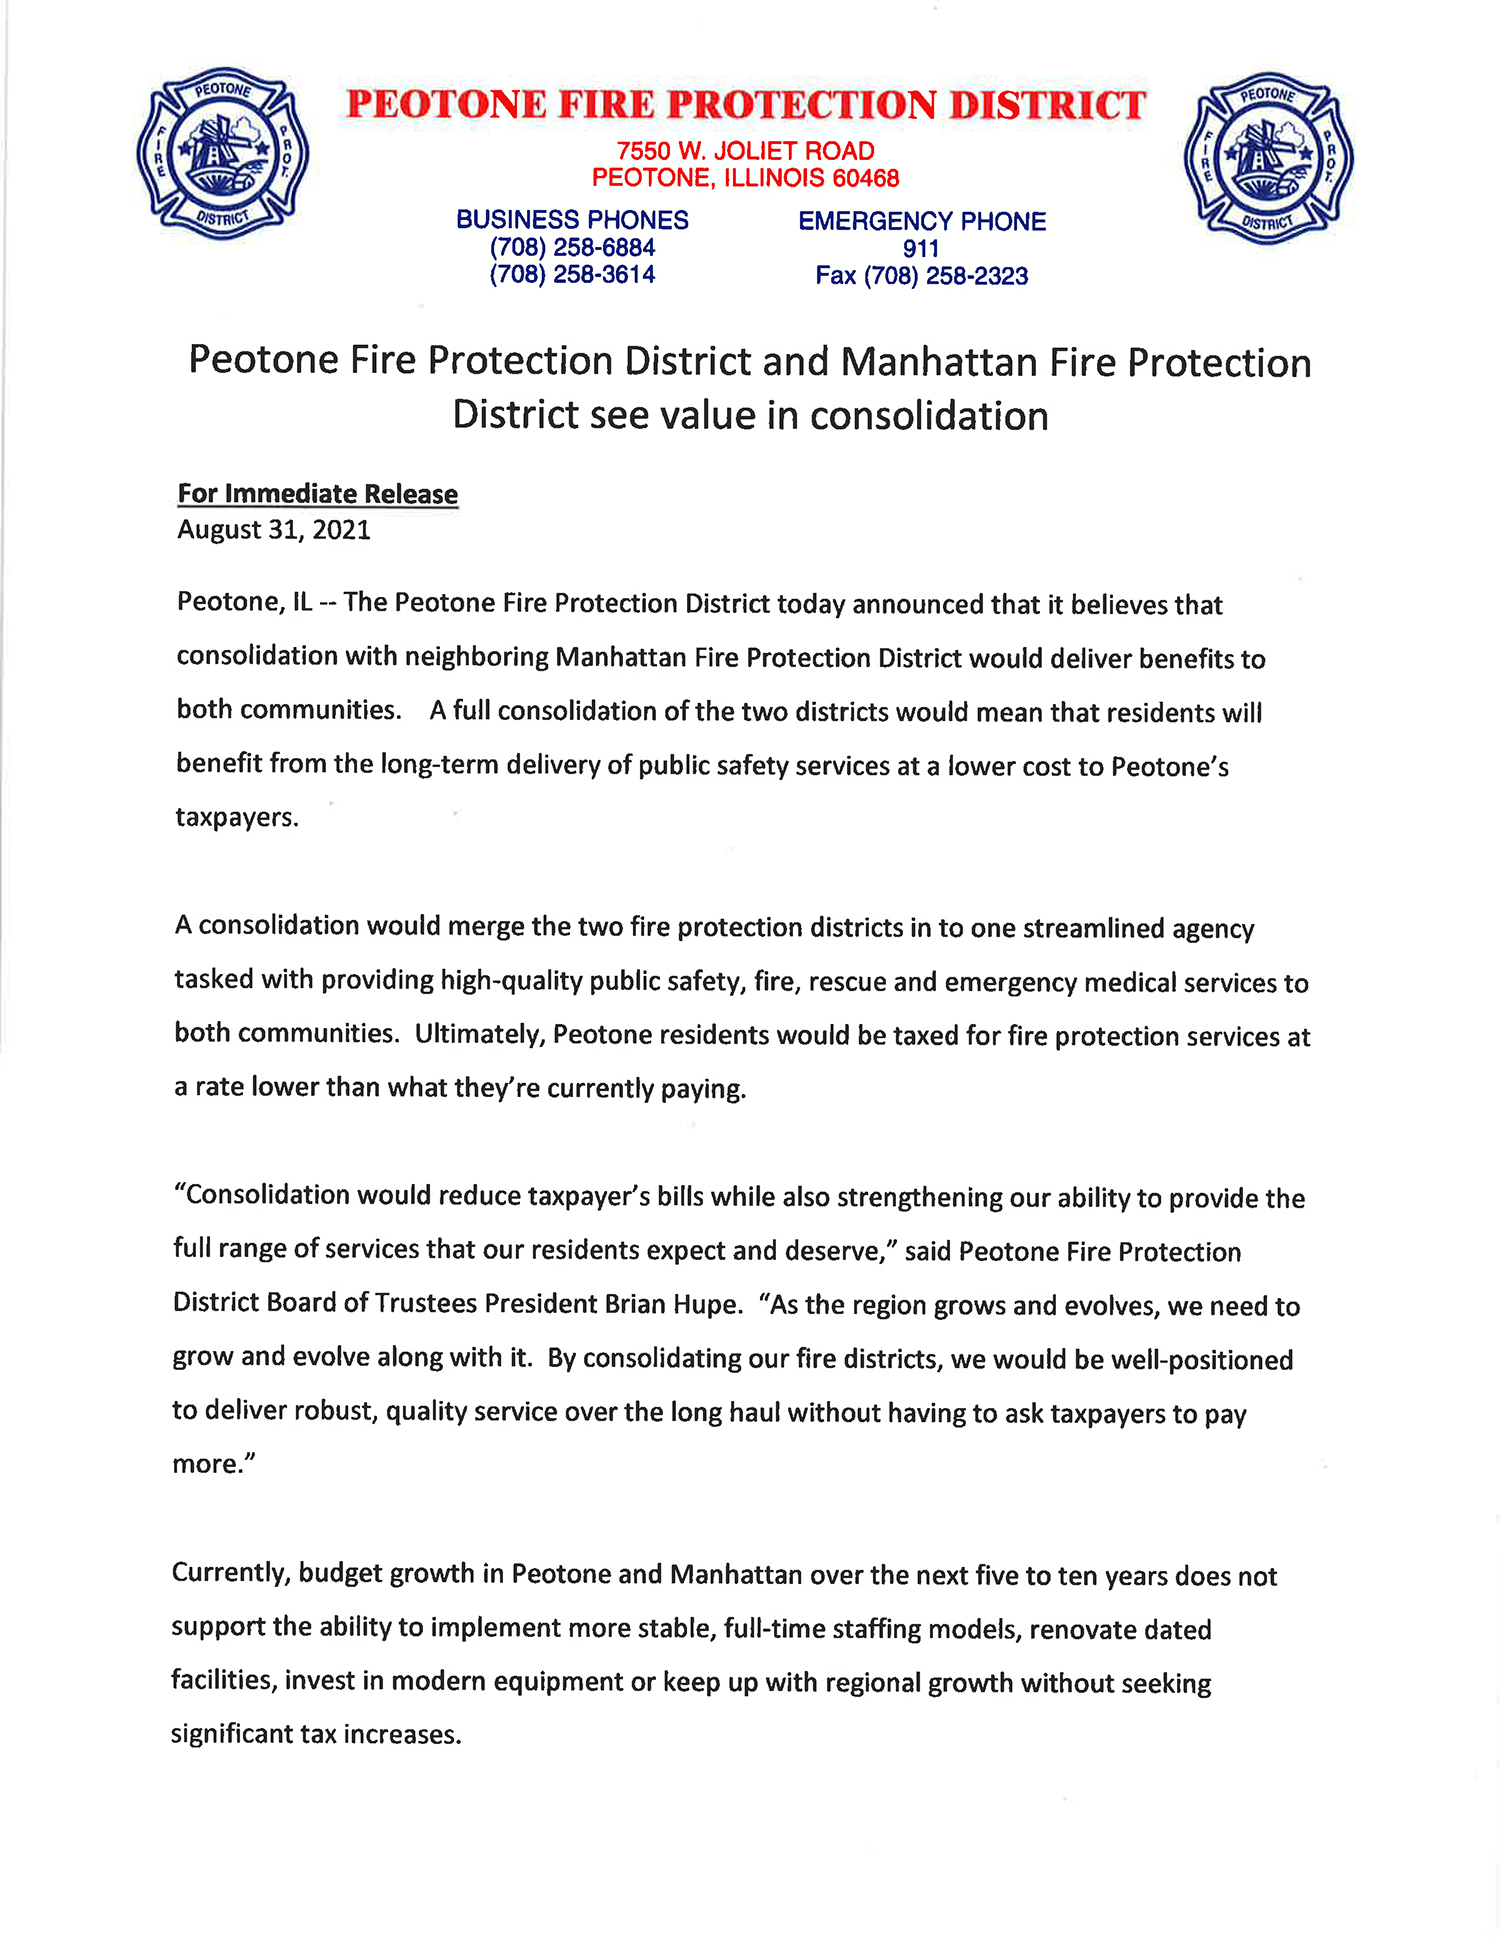 Consolidation report Peotone in Manhattan Fire Protection District